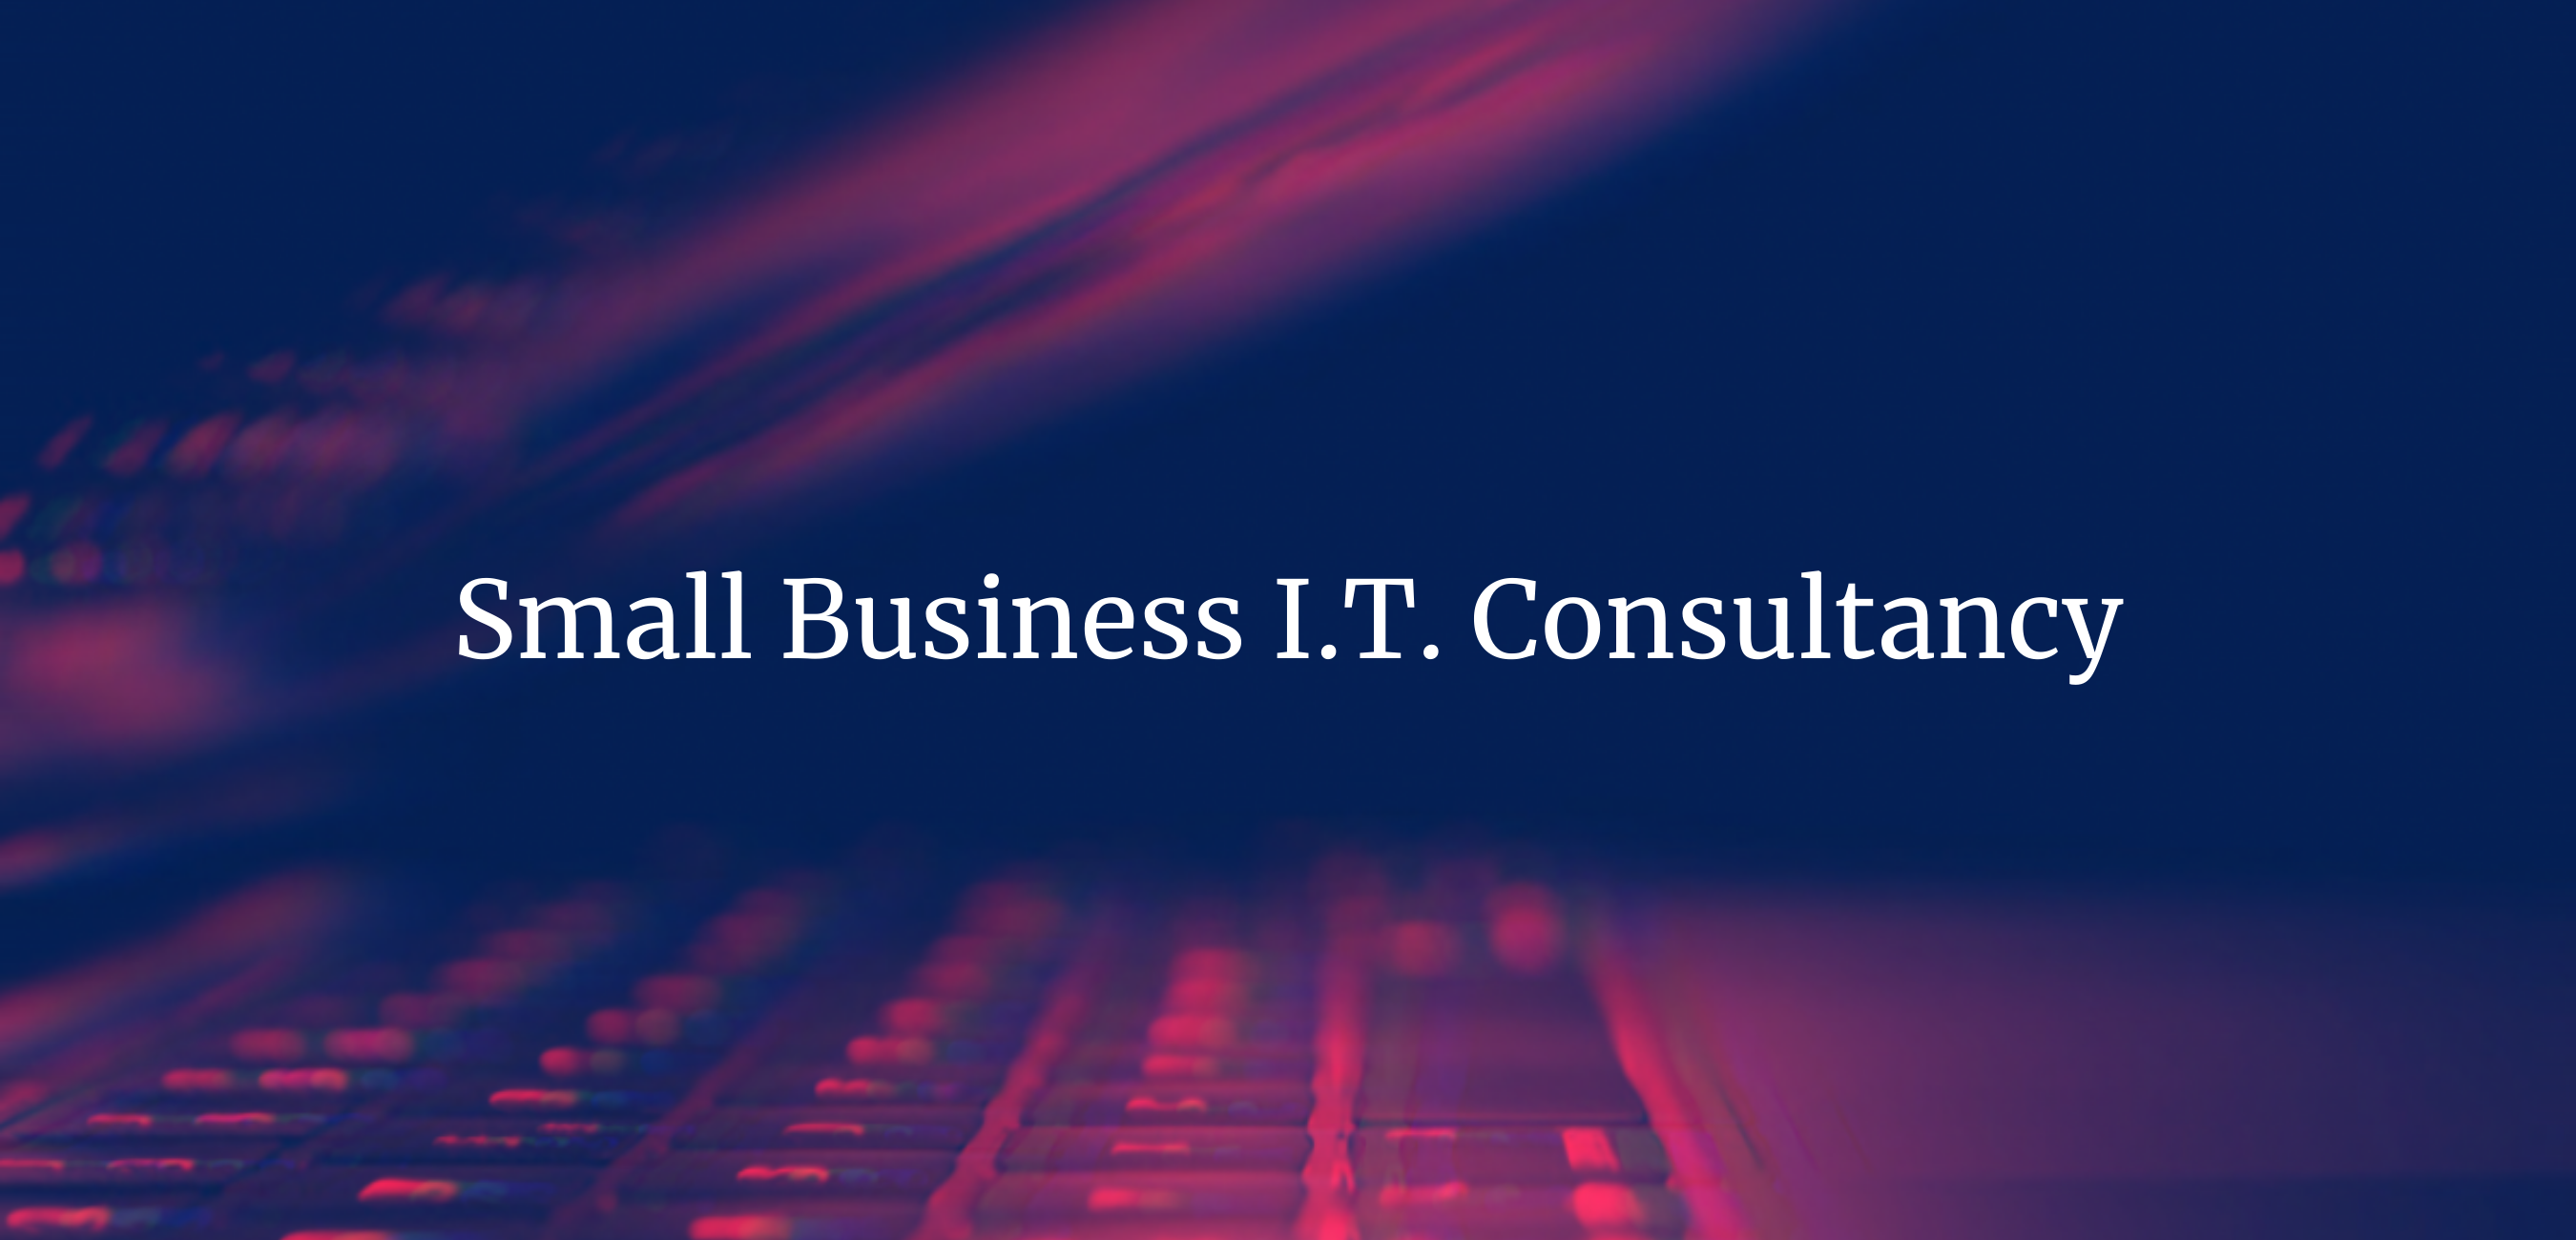 Small Business I.T. Consultancy (2)